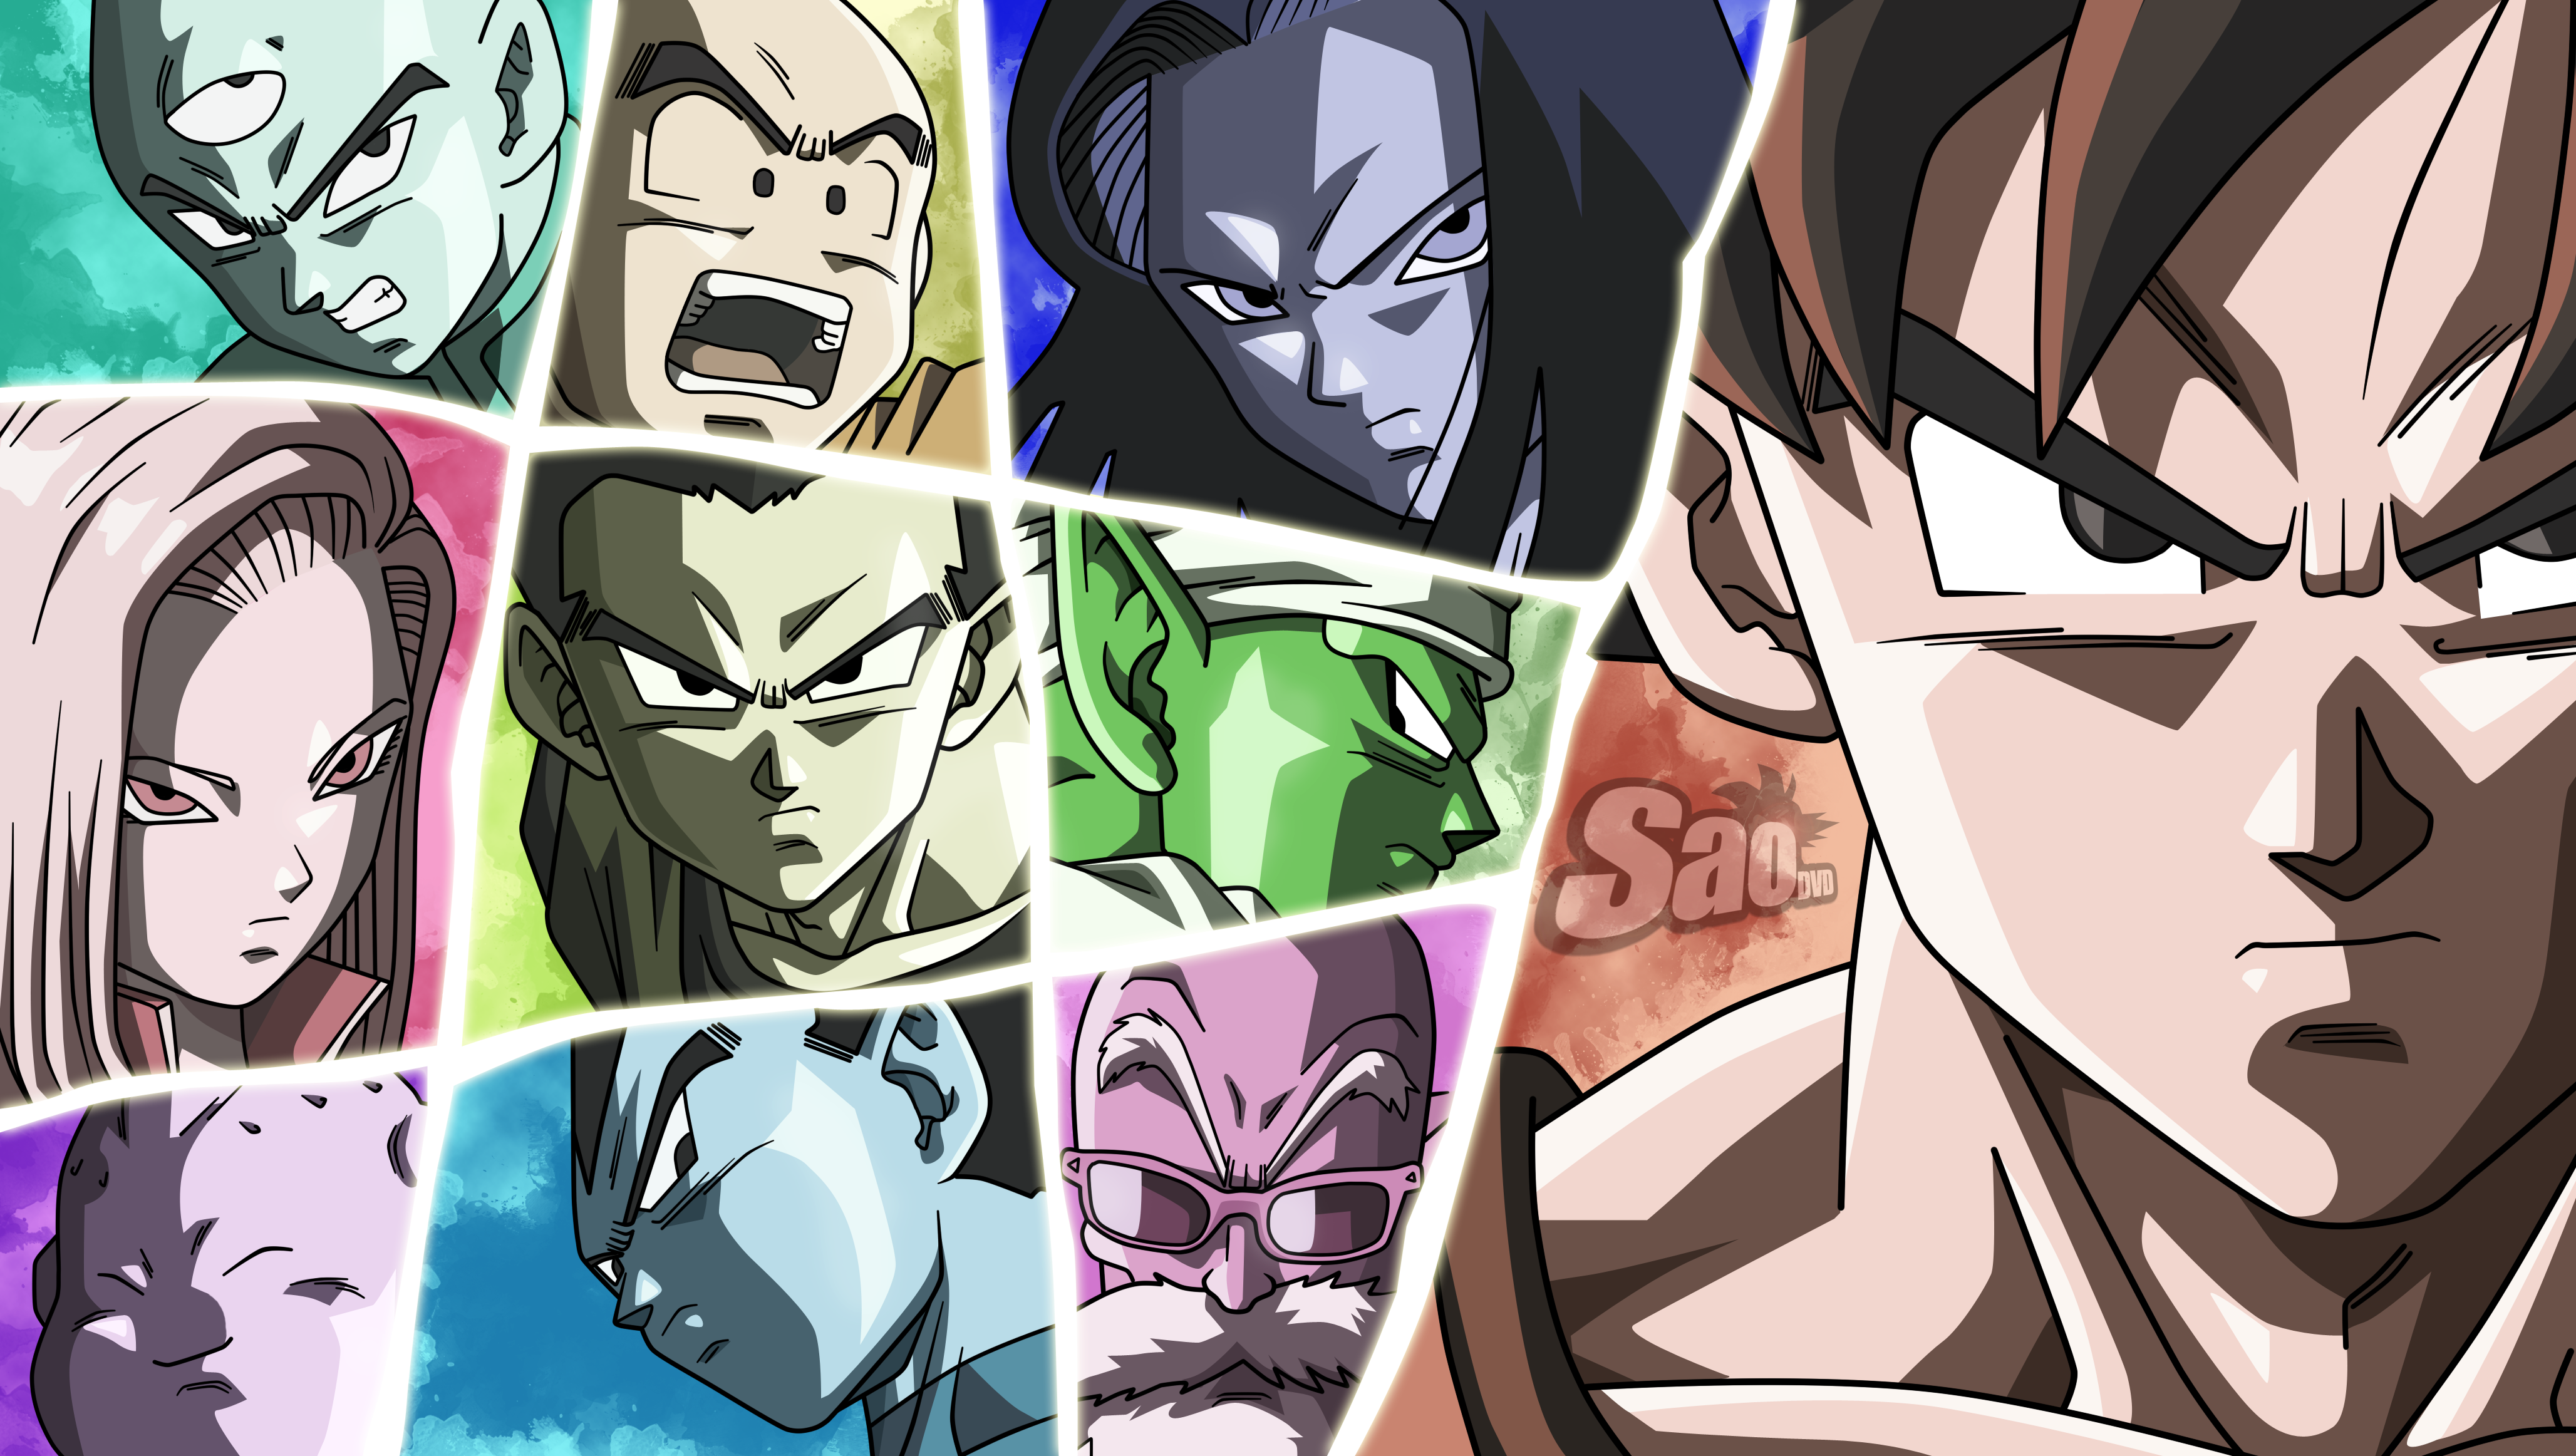 59 Android 17 Dragon Ball Hd Wallpapers Background Images